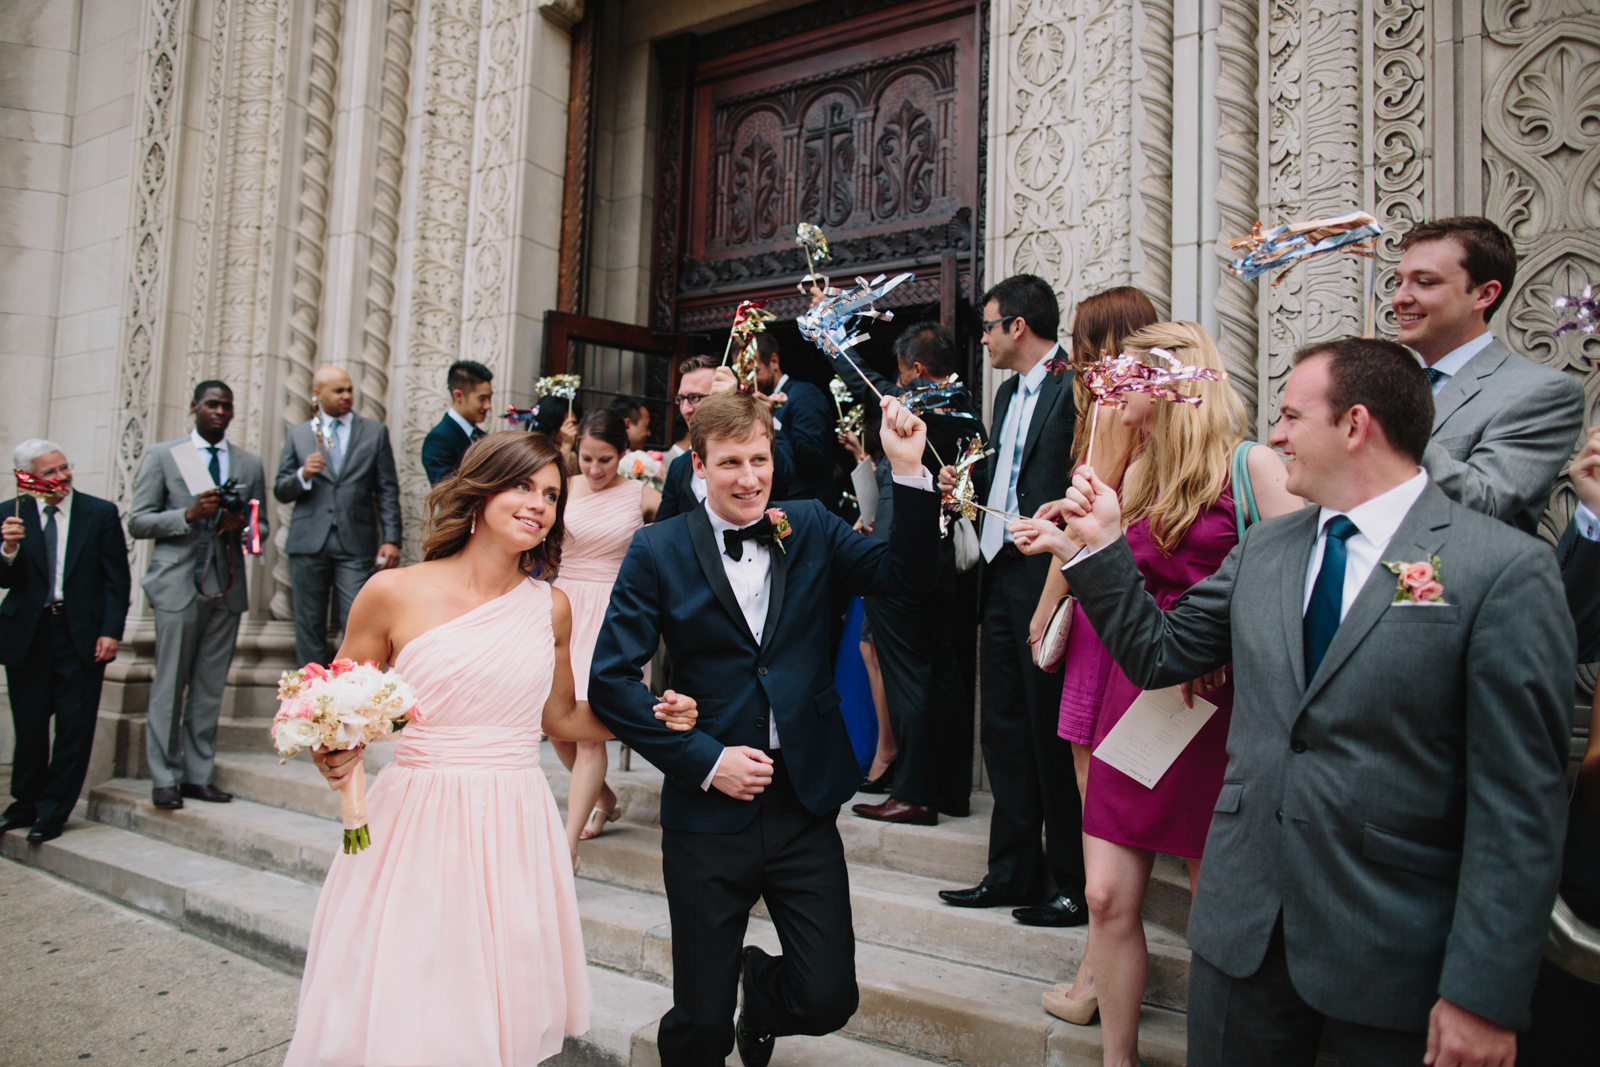 Fountain-Street-Church-and-Urban-Institute-of-Contemporary-Arts-Wedding-Kirstin-and-Khoi-009.jpg